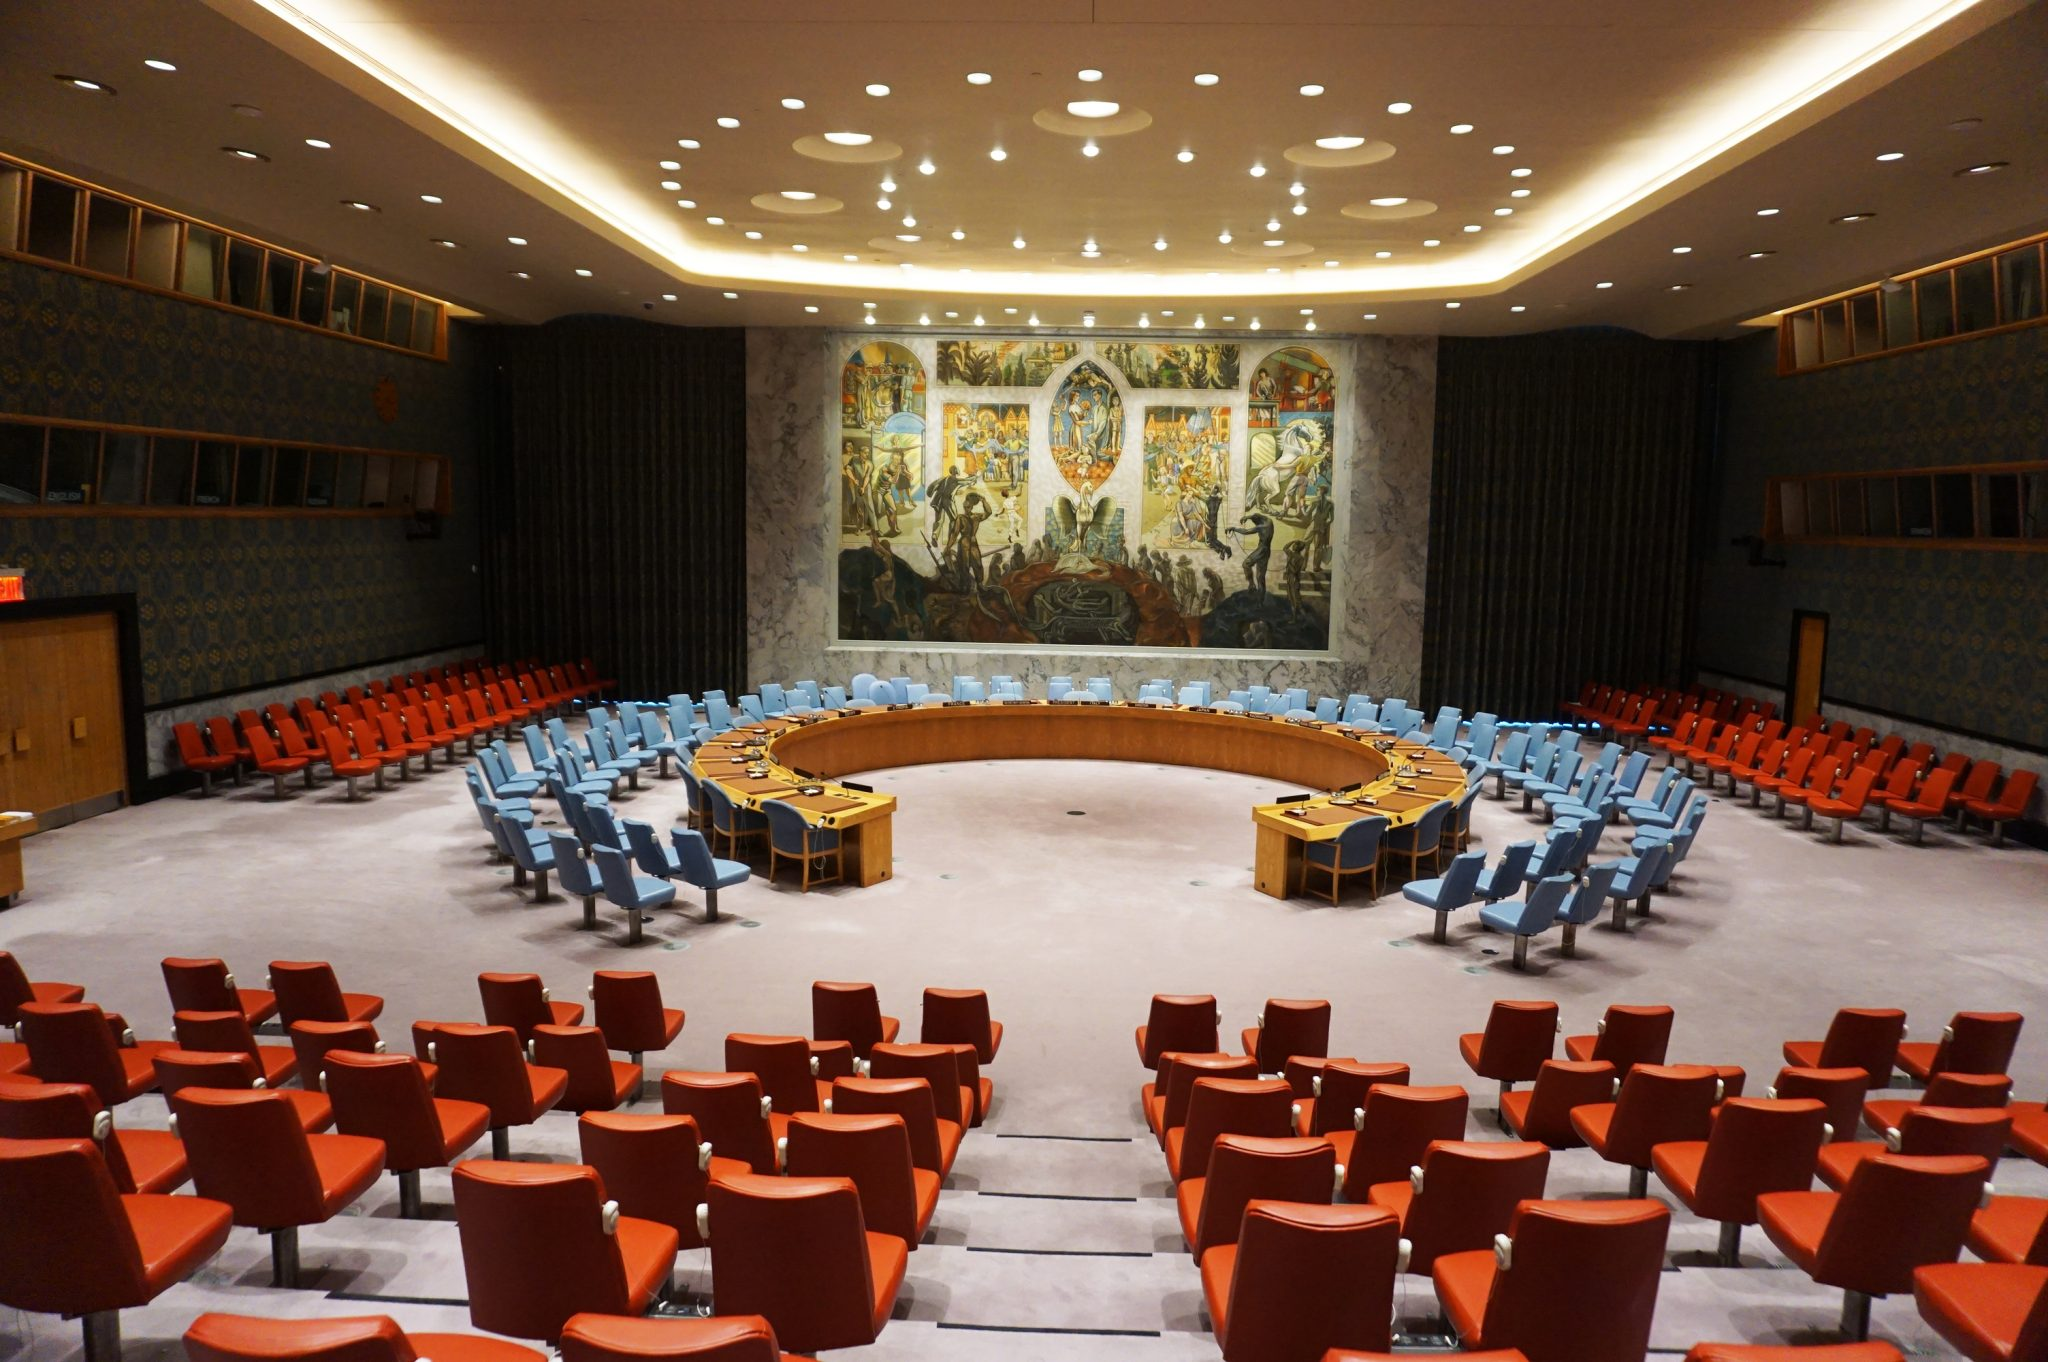 Touring the United Nations Headquarters in New York City